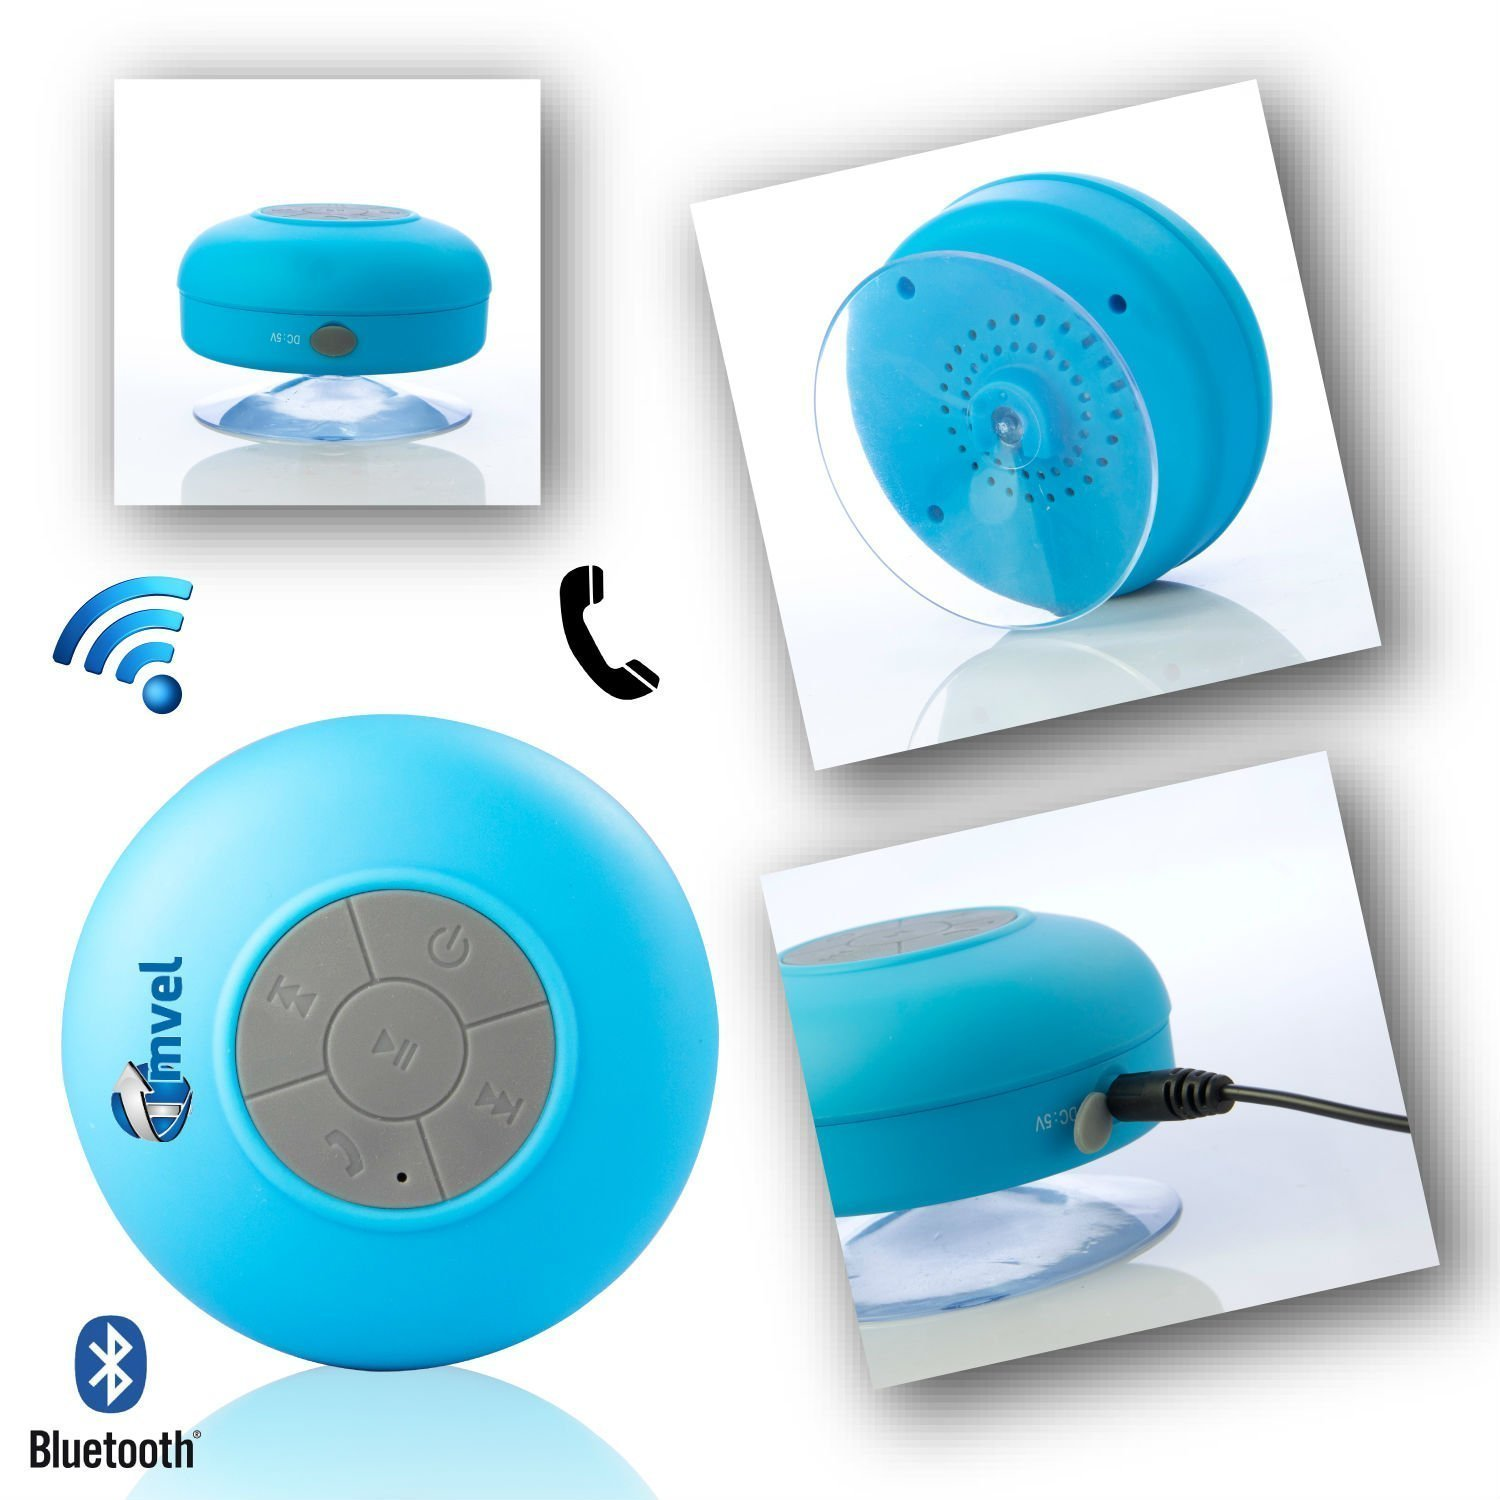 Tmvel's Bluetooth shower speaker. ($11)